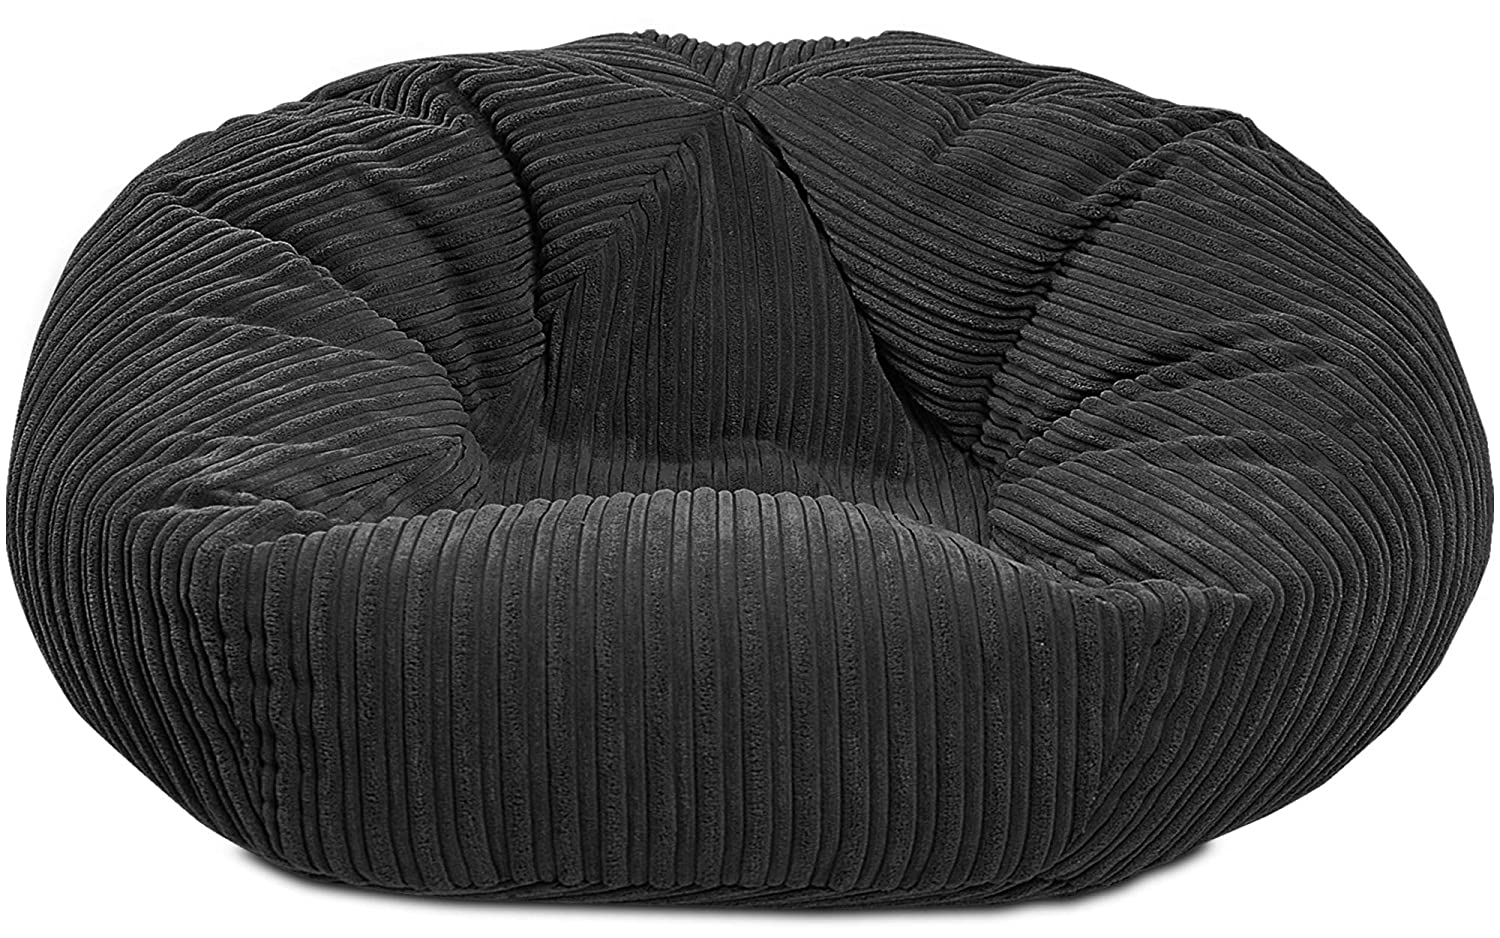 Fantastic Gilda Monster Adult Beanbag Classic Soft Comfy Gaming Jumbo Corduroy Bean Chair Filled With Virgin Beans Beautiful Home Accessory Moulds To Shape Machost Co Dining Chair Design Ideas Machostcouk